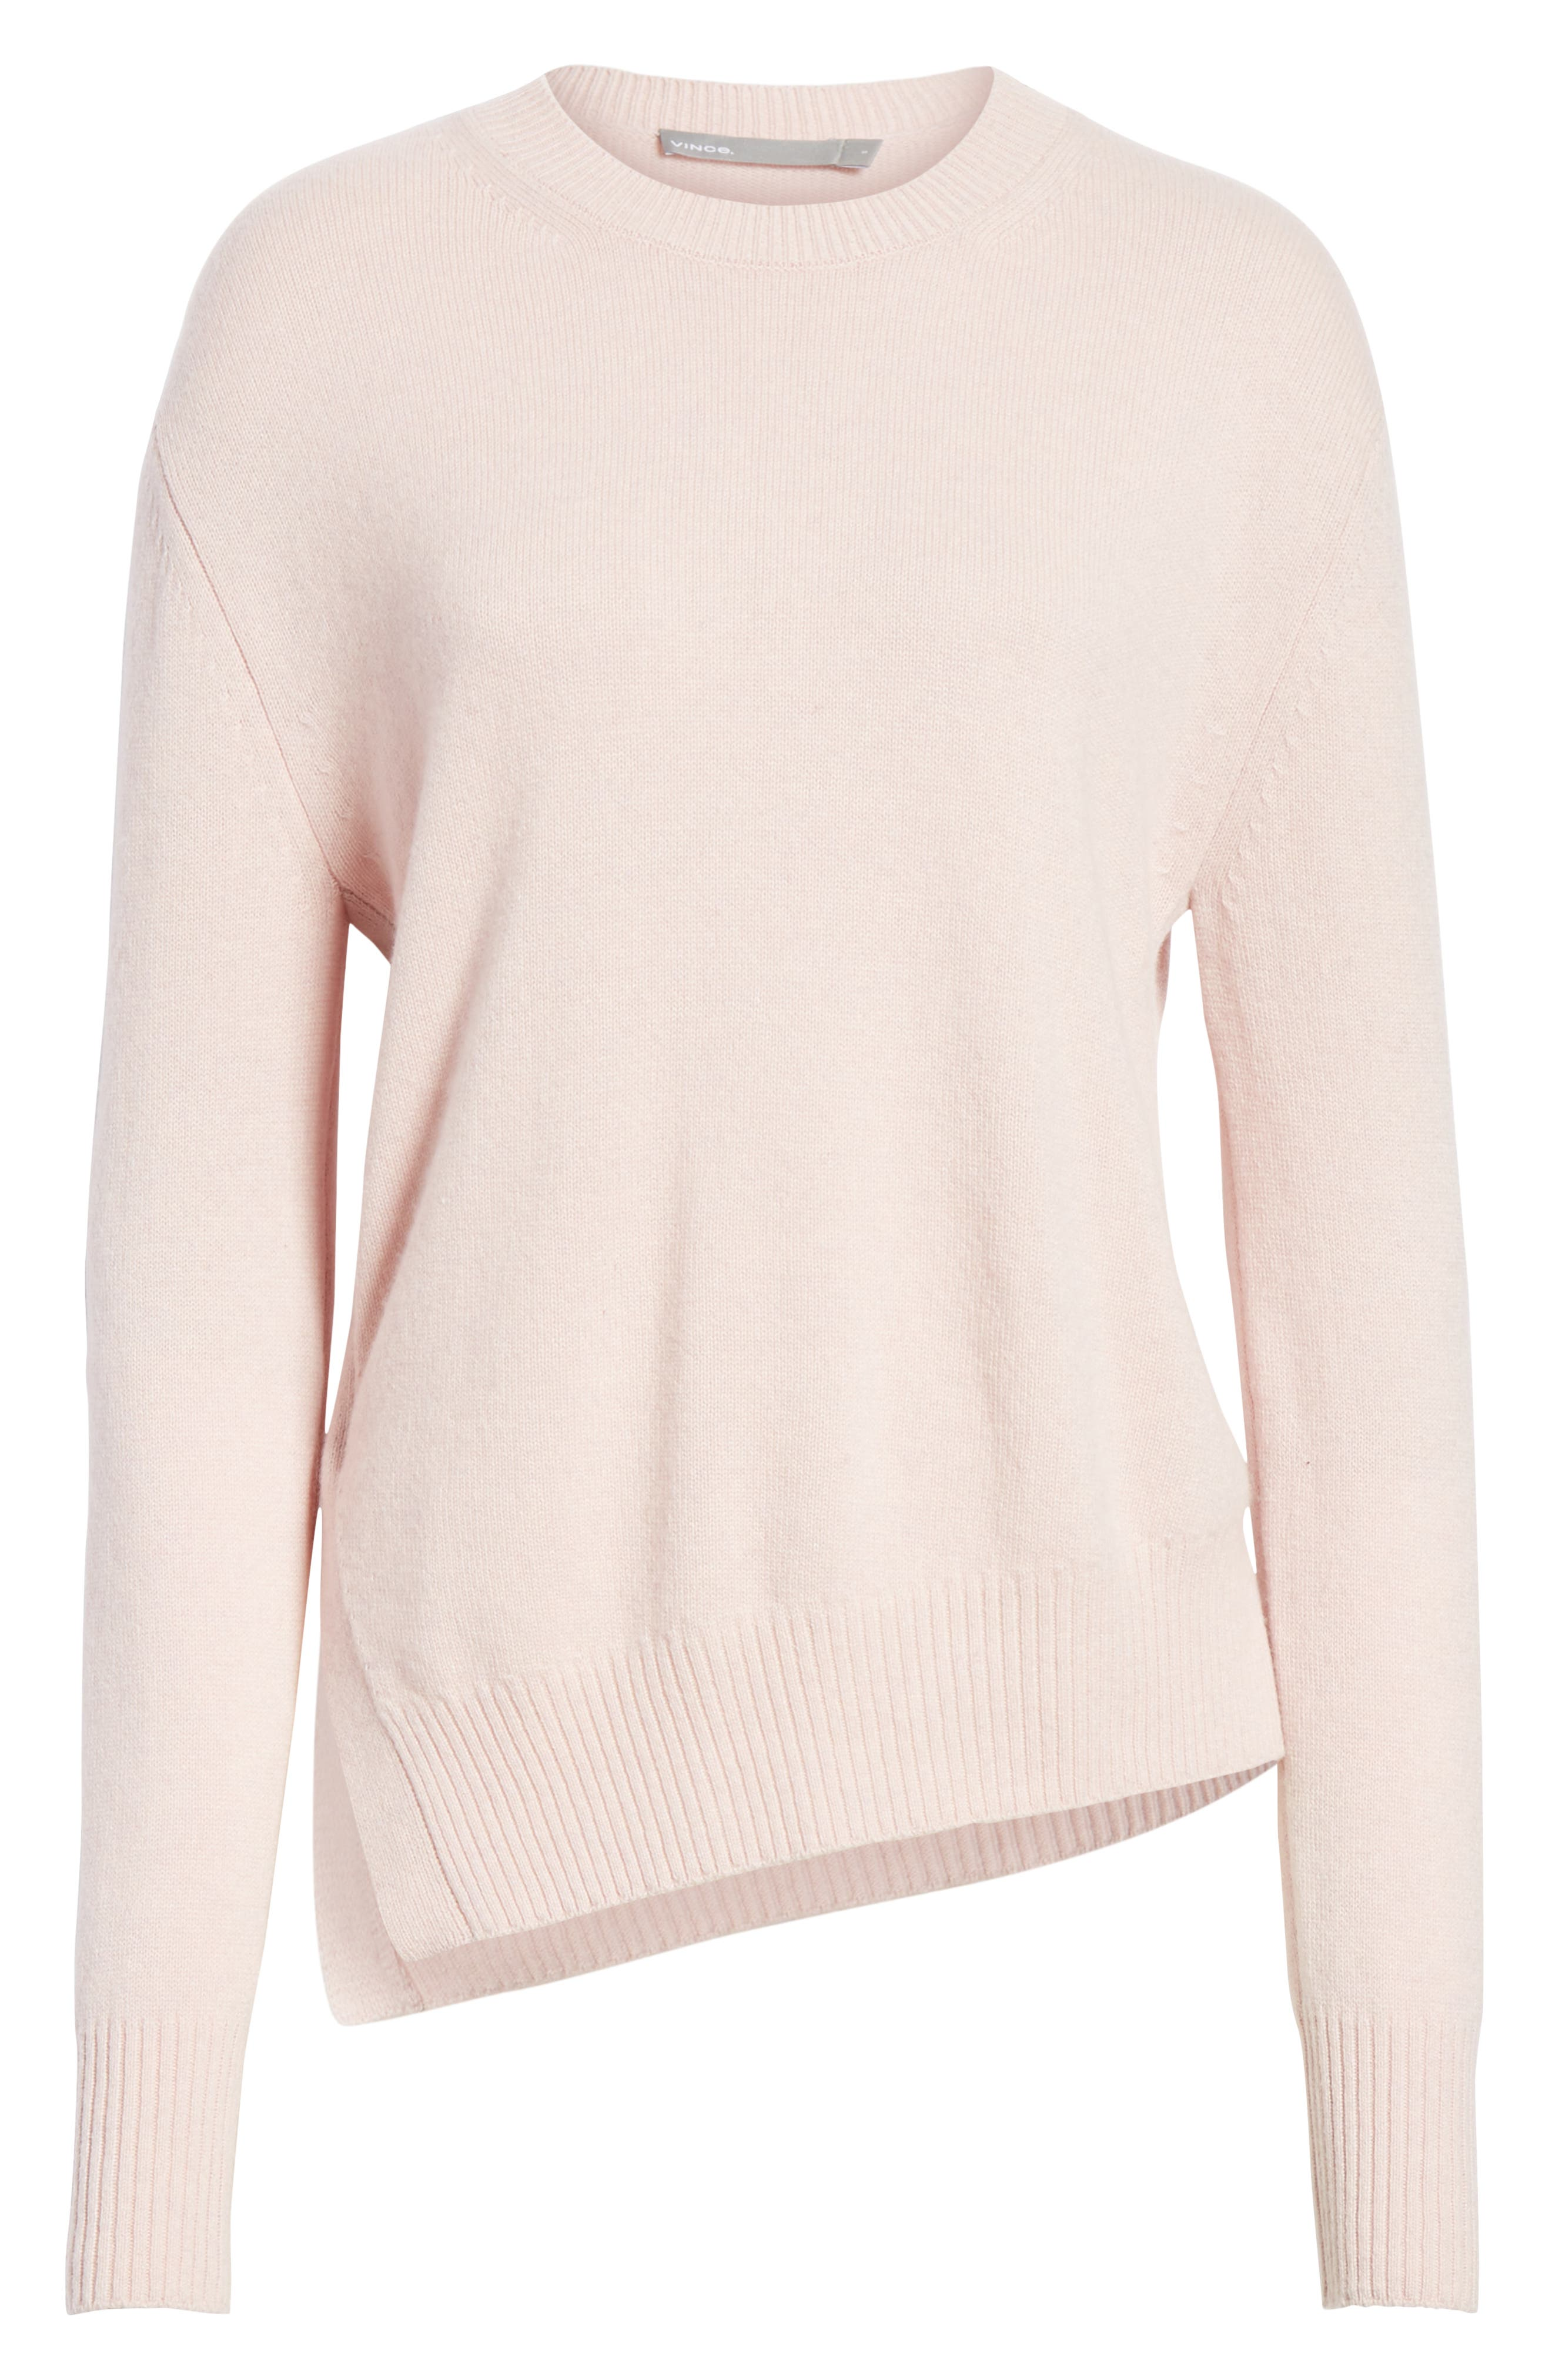 Asymmetrical Cashmere Sweater,                             Alternate thumbnail 6, color,                             CHERRY BLOSSOM